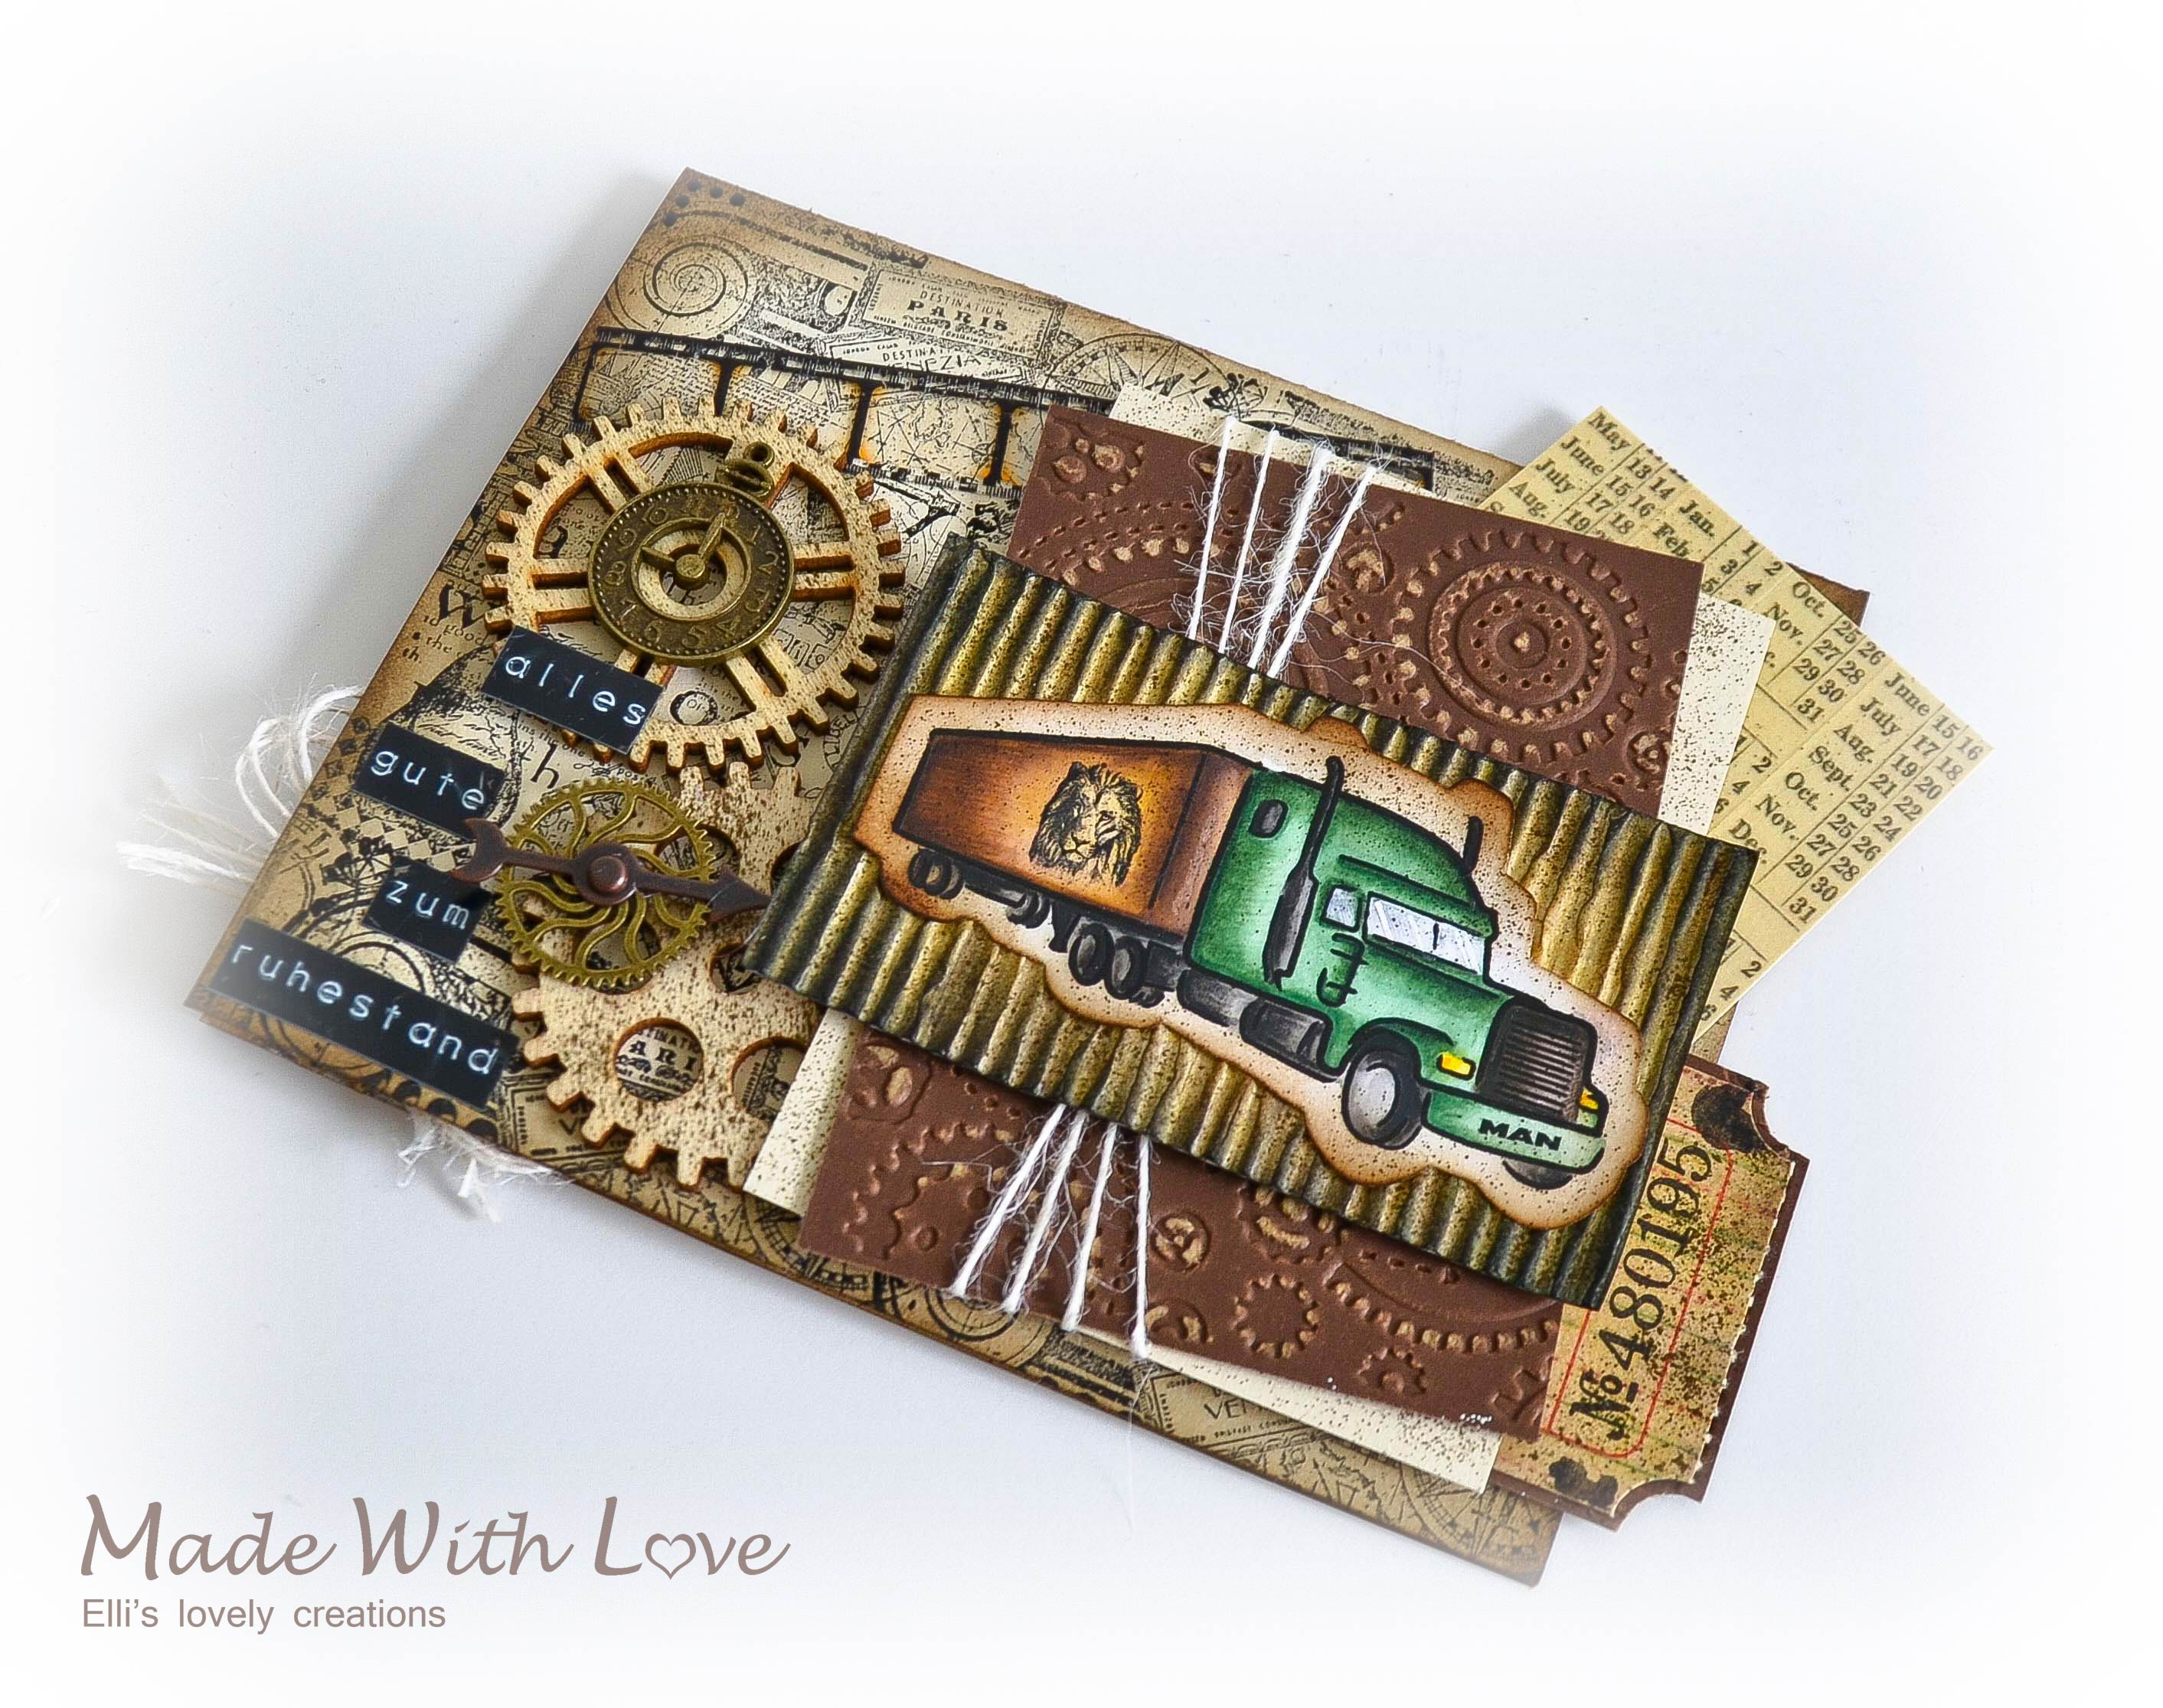 Mixed Media Vintage Steampunk Masculine Card HR 8